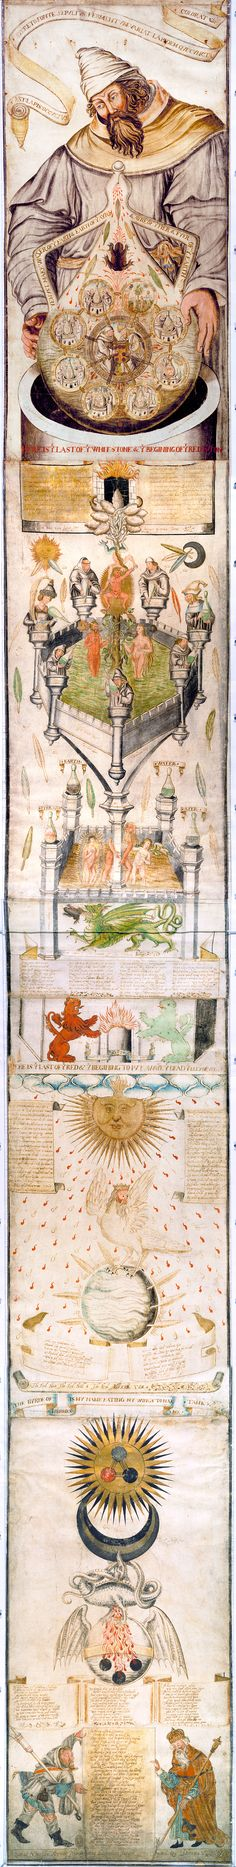 The Ripley scroll is a truly beautiful alchemical manuscript, attributed to George Ripley (c. 1415 ? 1490), Canon Regular of the priory at Bridlington in Yorkshire